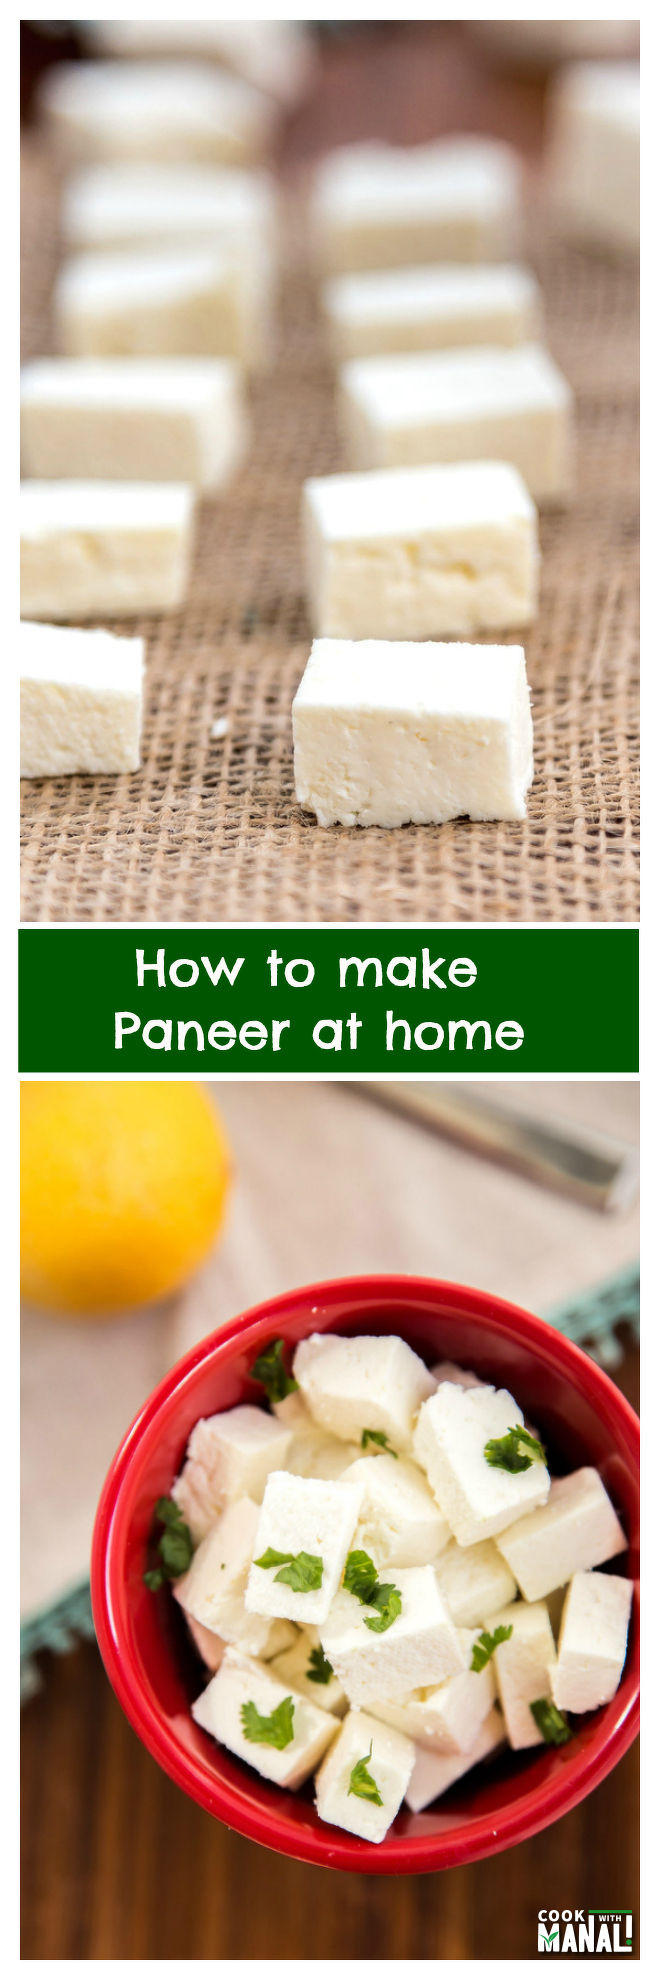 how-to-make-paneer-at-home-collage